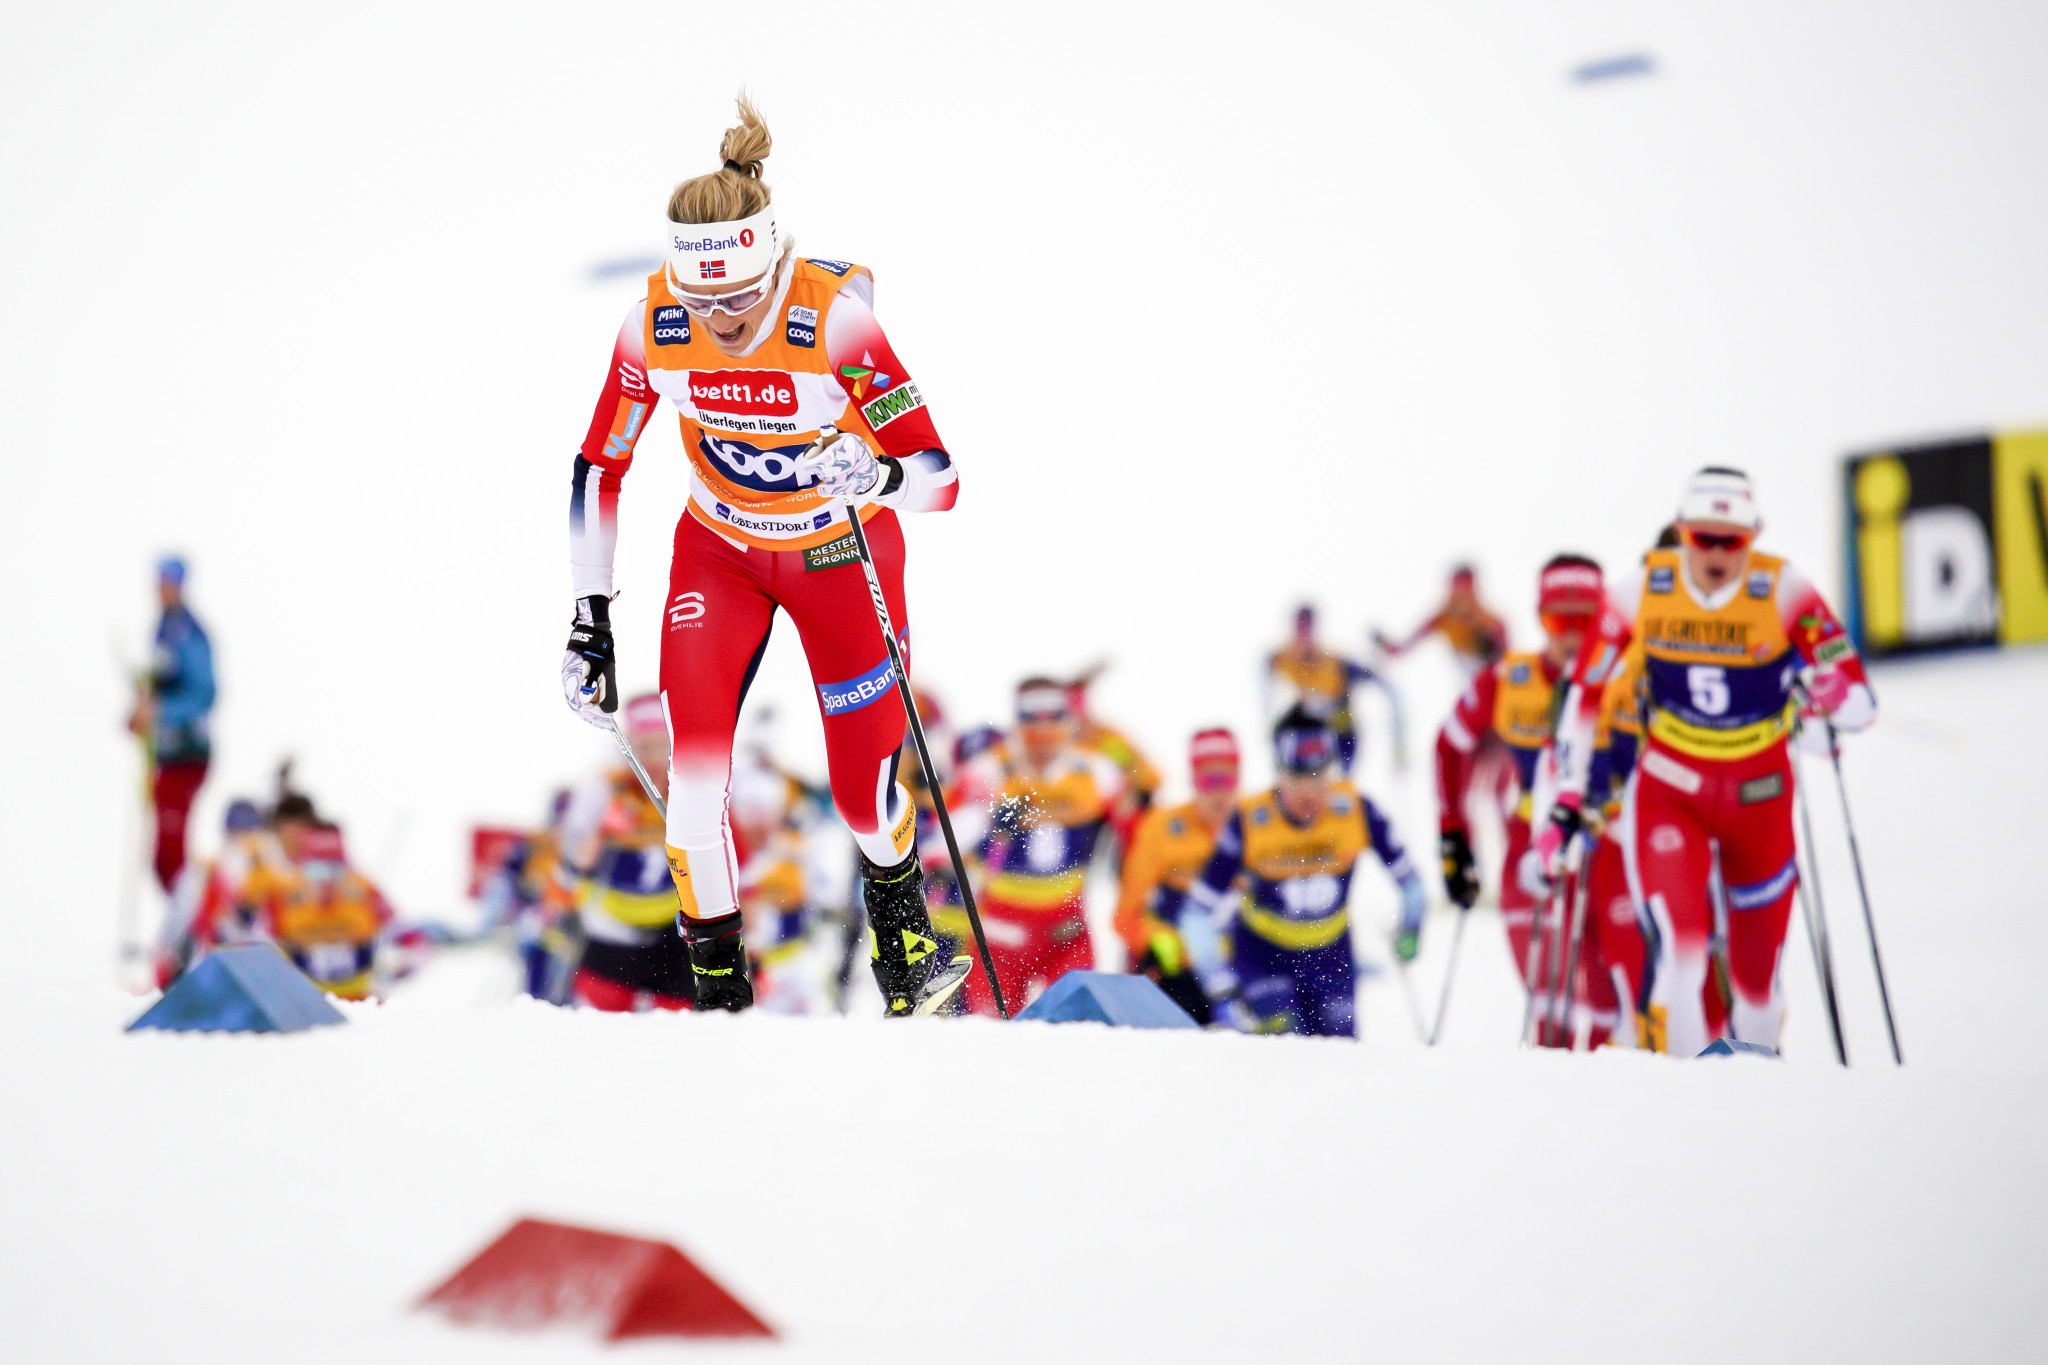 Therese Johaug is one of Norway's leading cross-country athletes but will be denied the chance to compete on home snow this season due to the coronavirus pandemic ©Getty Images